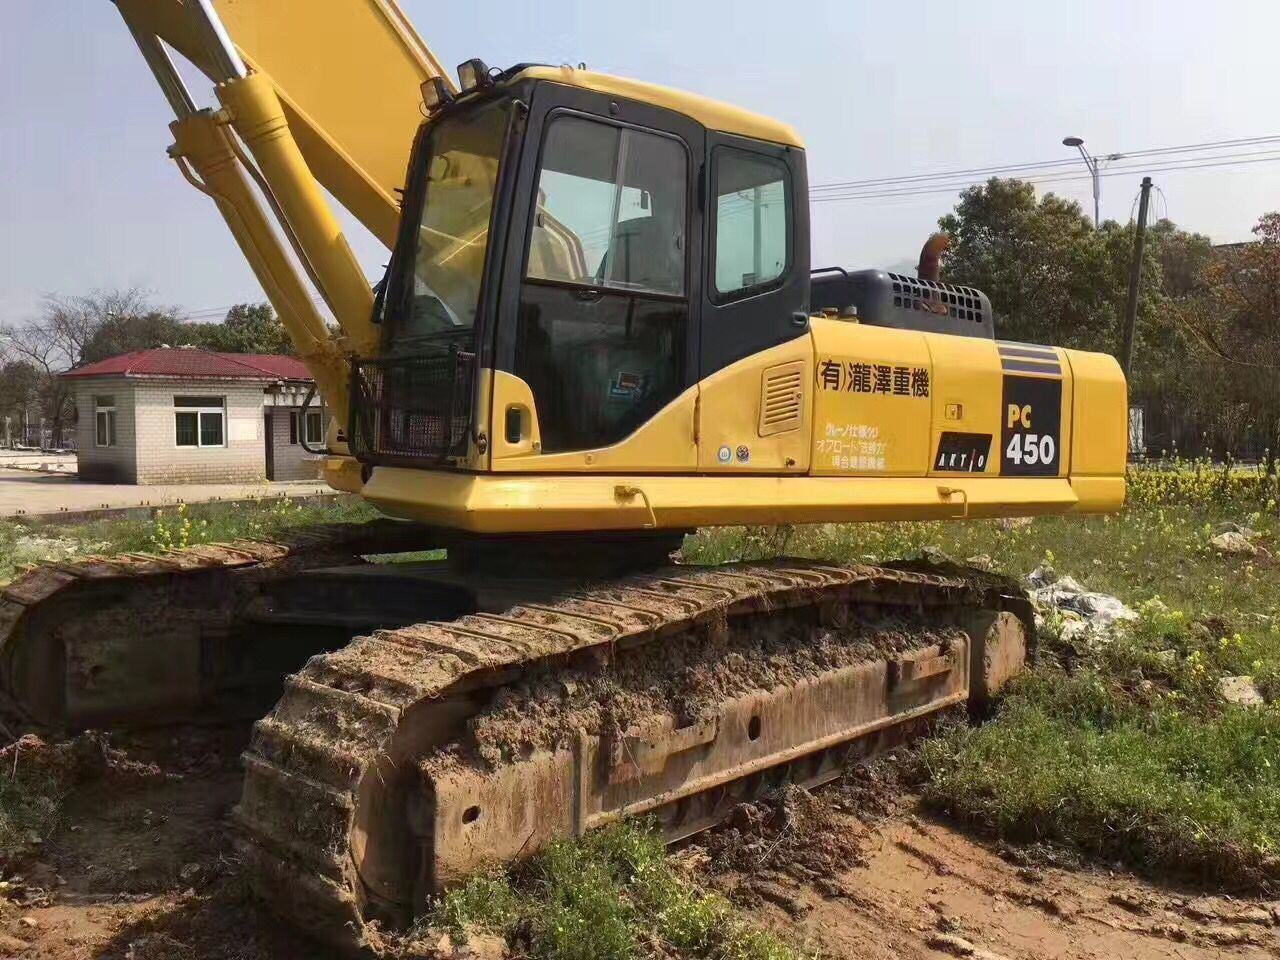 Very Good Working Condition Used Hydraulic Crawler Japanese Excavator Komatsu PC450-7 for Sale